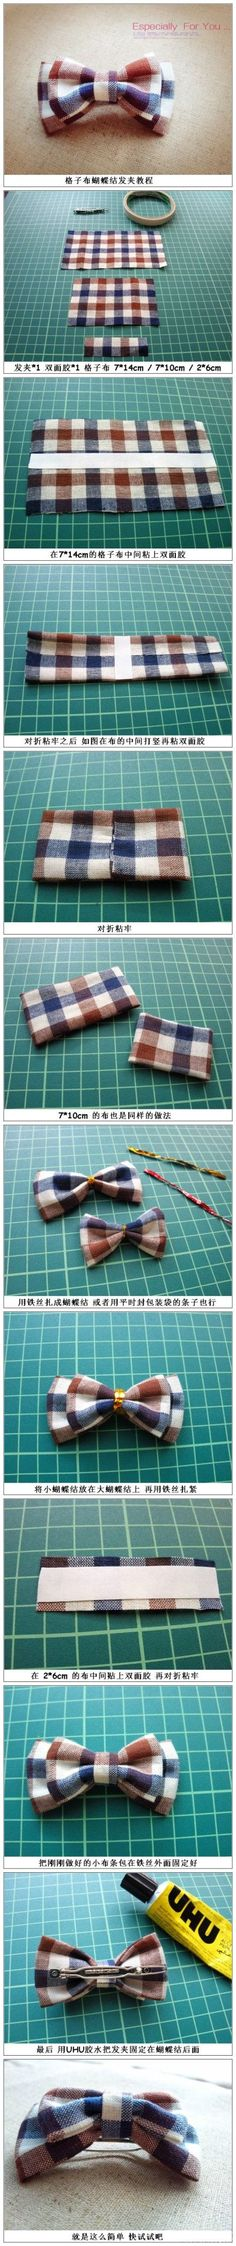 Petite barrette avec un noeud en tissu tartan / Tartan bow hair-clip Sewing Hacks, Sewing Tutorials, Sewing Crafts, Sewing Projects, Diy Crafts, Handmade Crafts, Fabric Crafts, Sewing For Kids, Baby Sewing